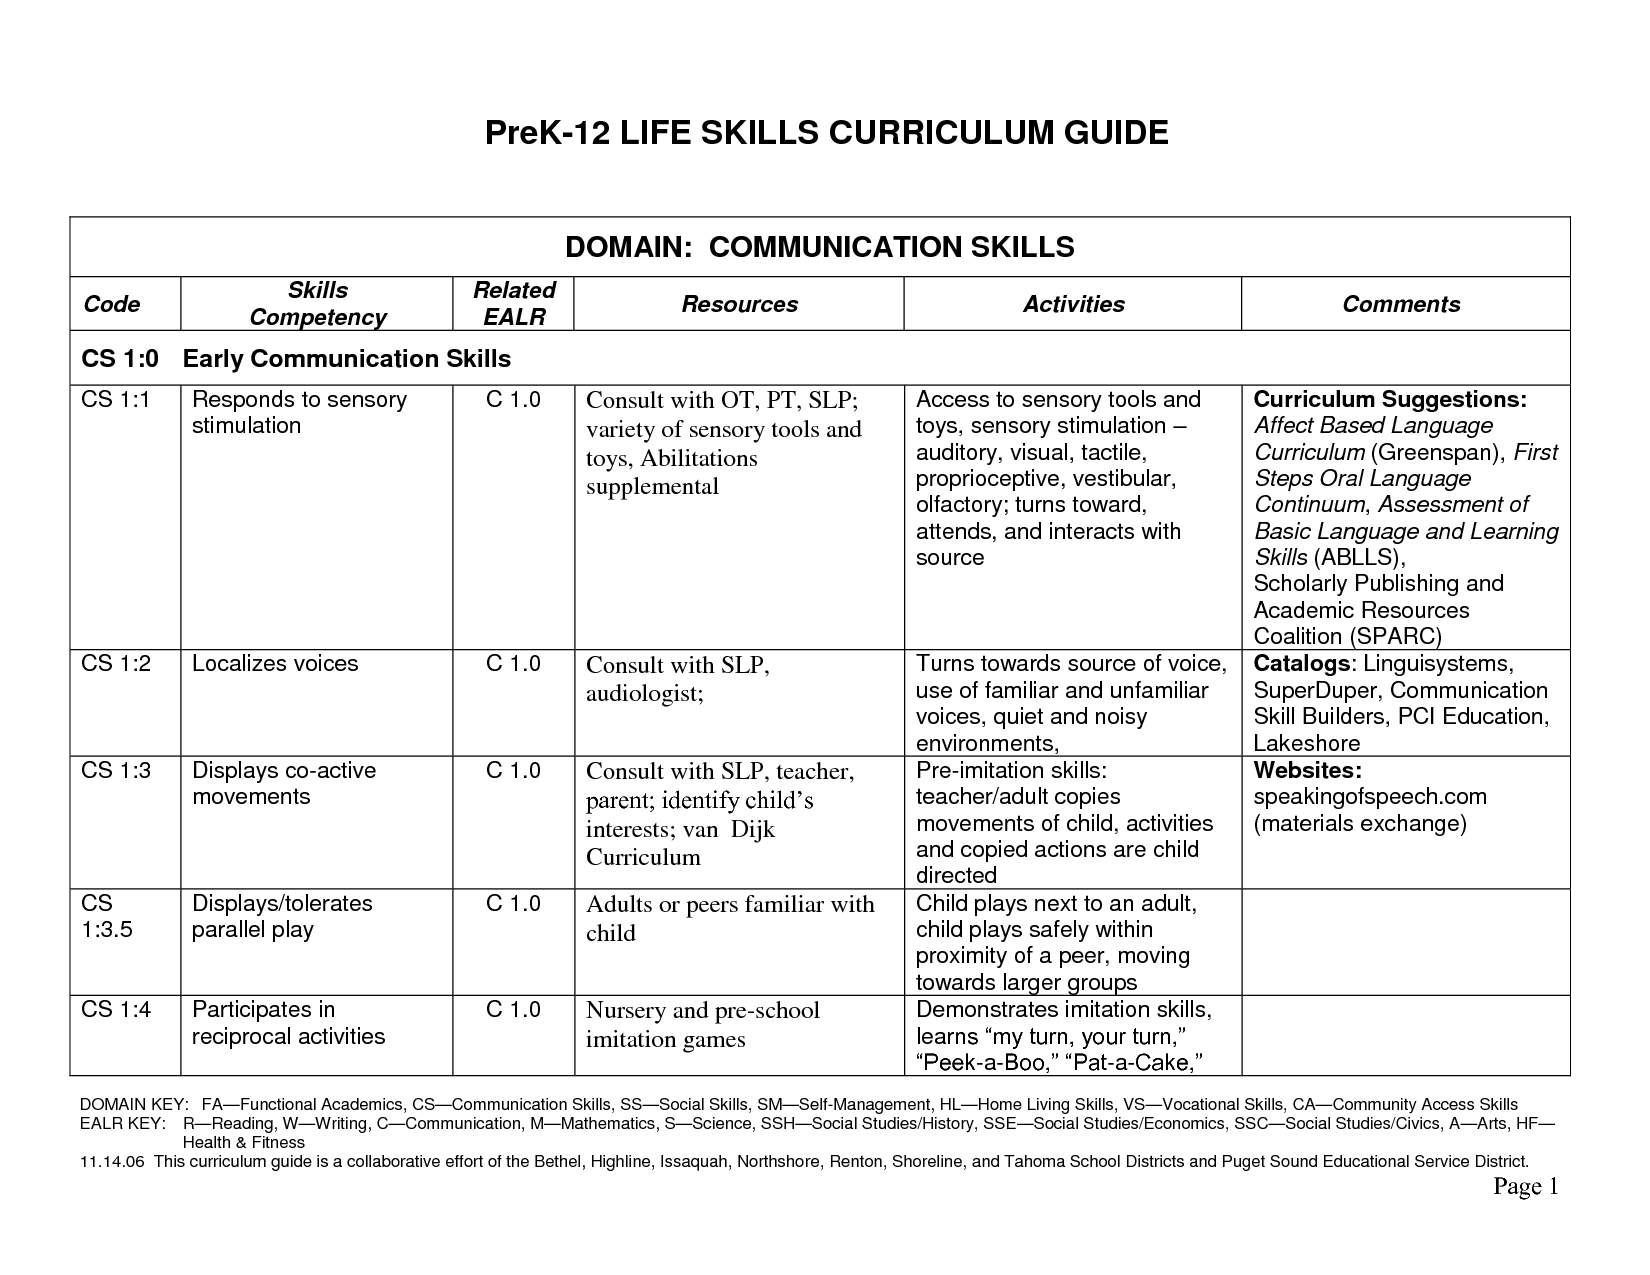 Functional Academics Worksheet